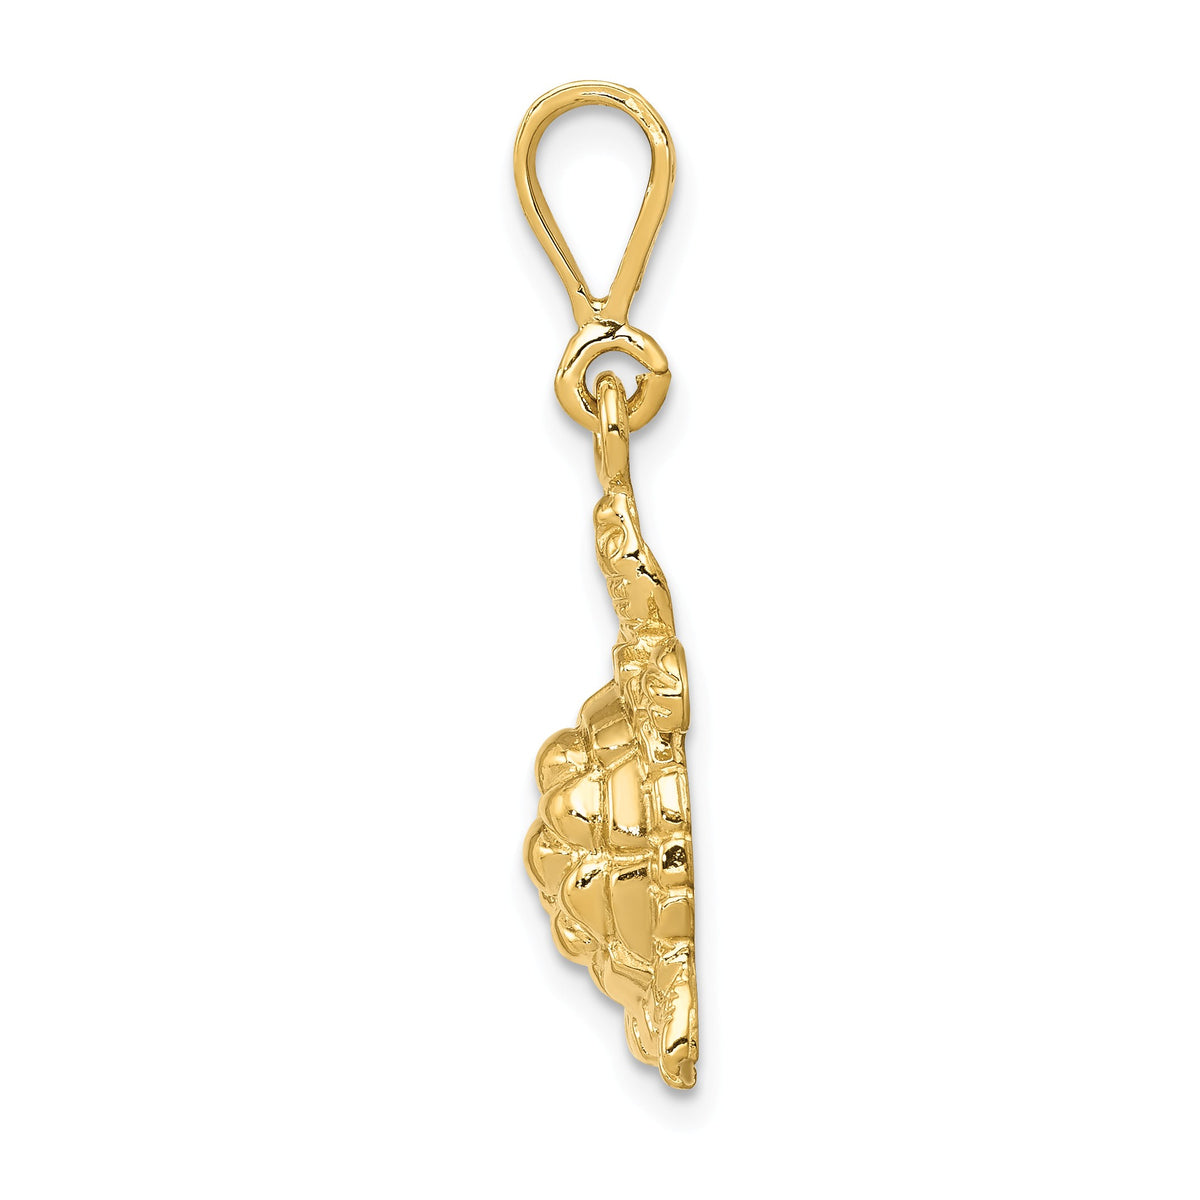 Alternate view of the 14k Yellow Gold 2D Turtle Pendant by The Black Bow Jewelry Co.